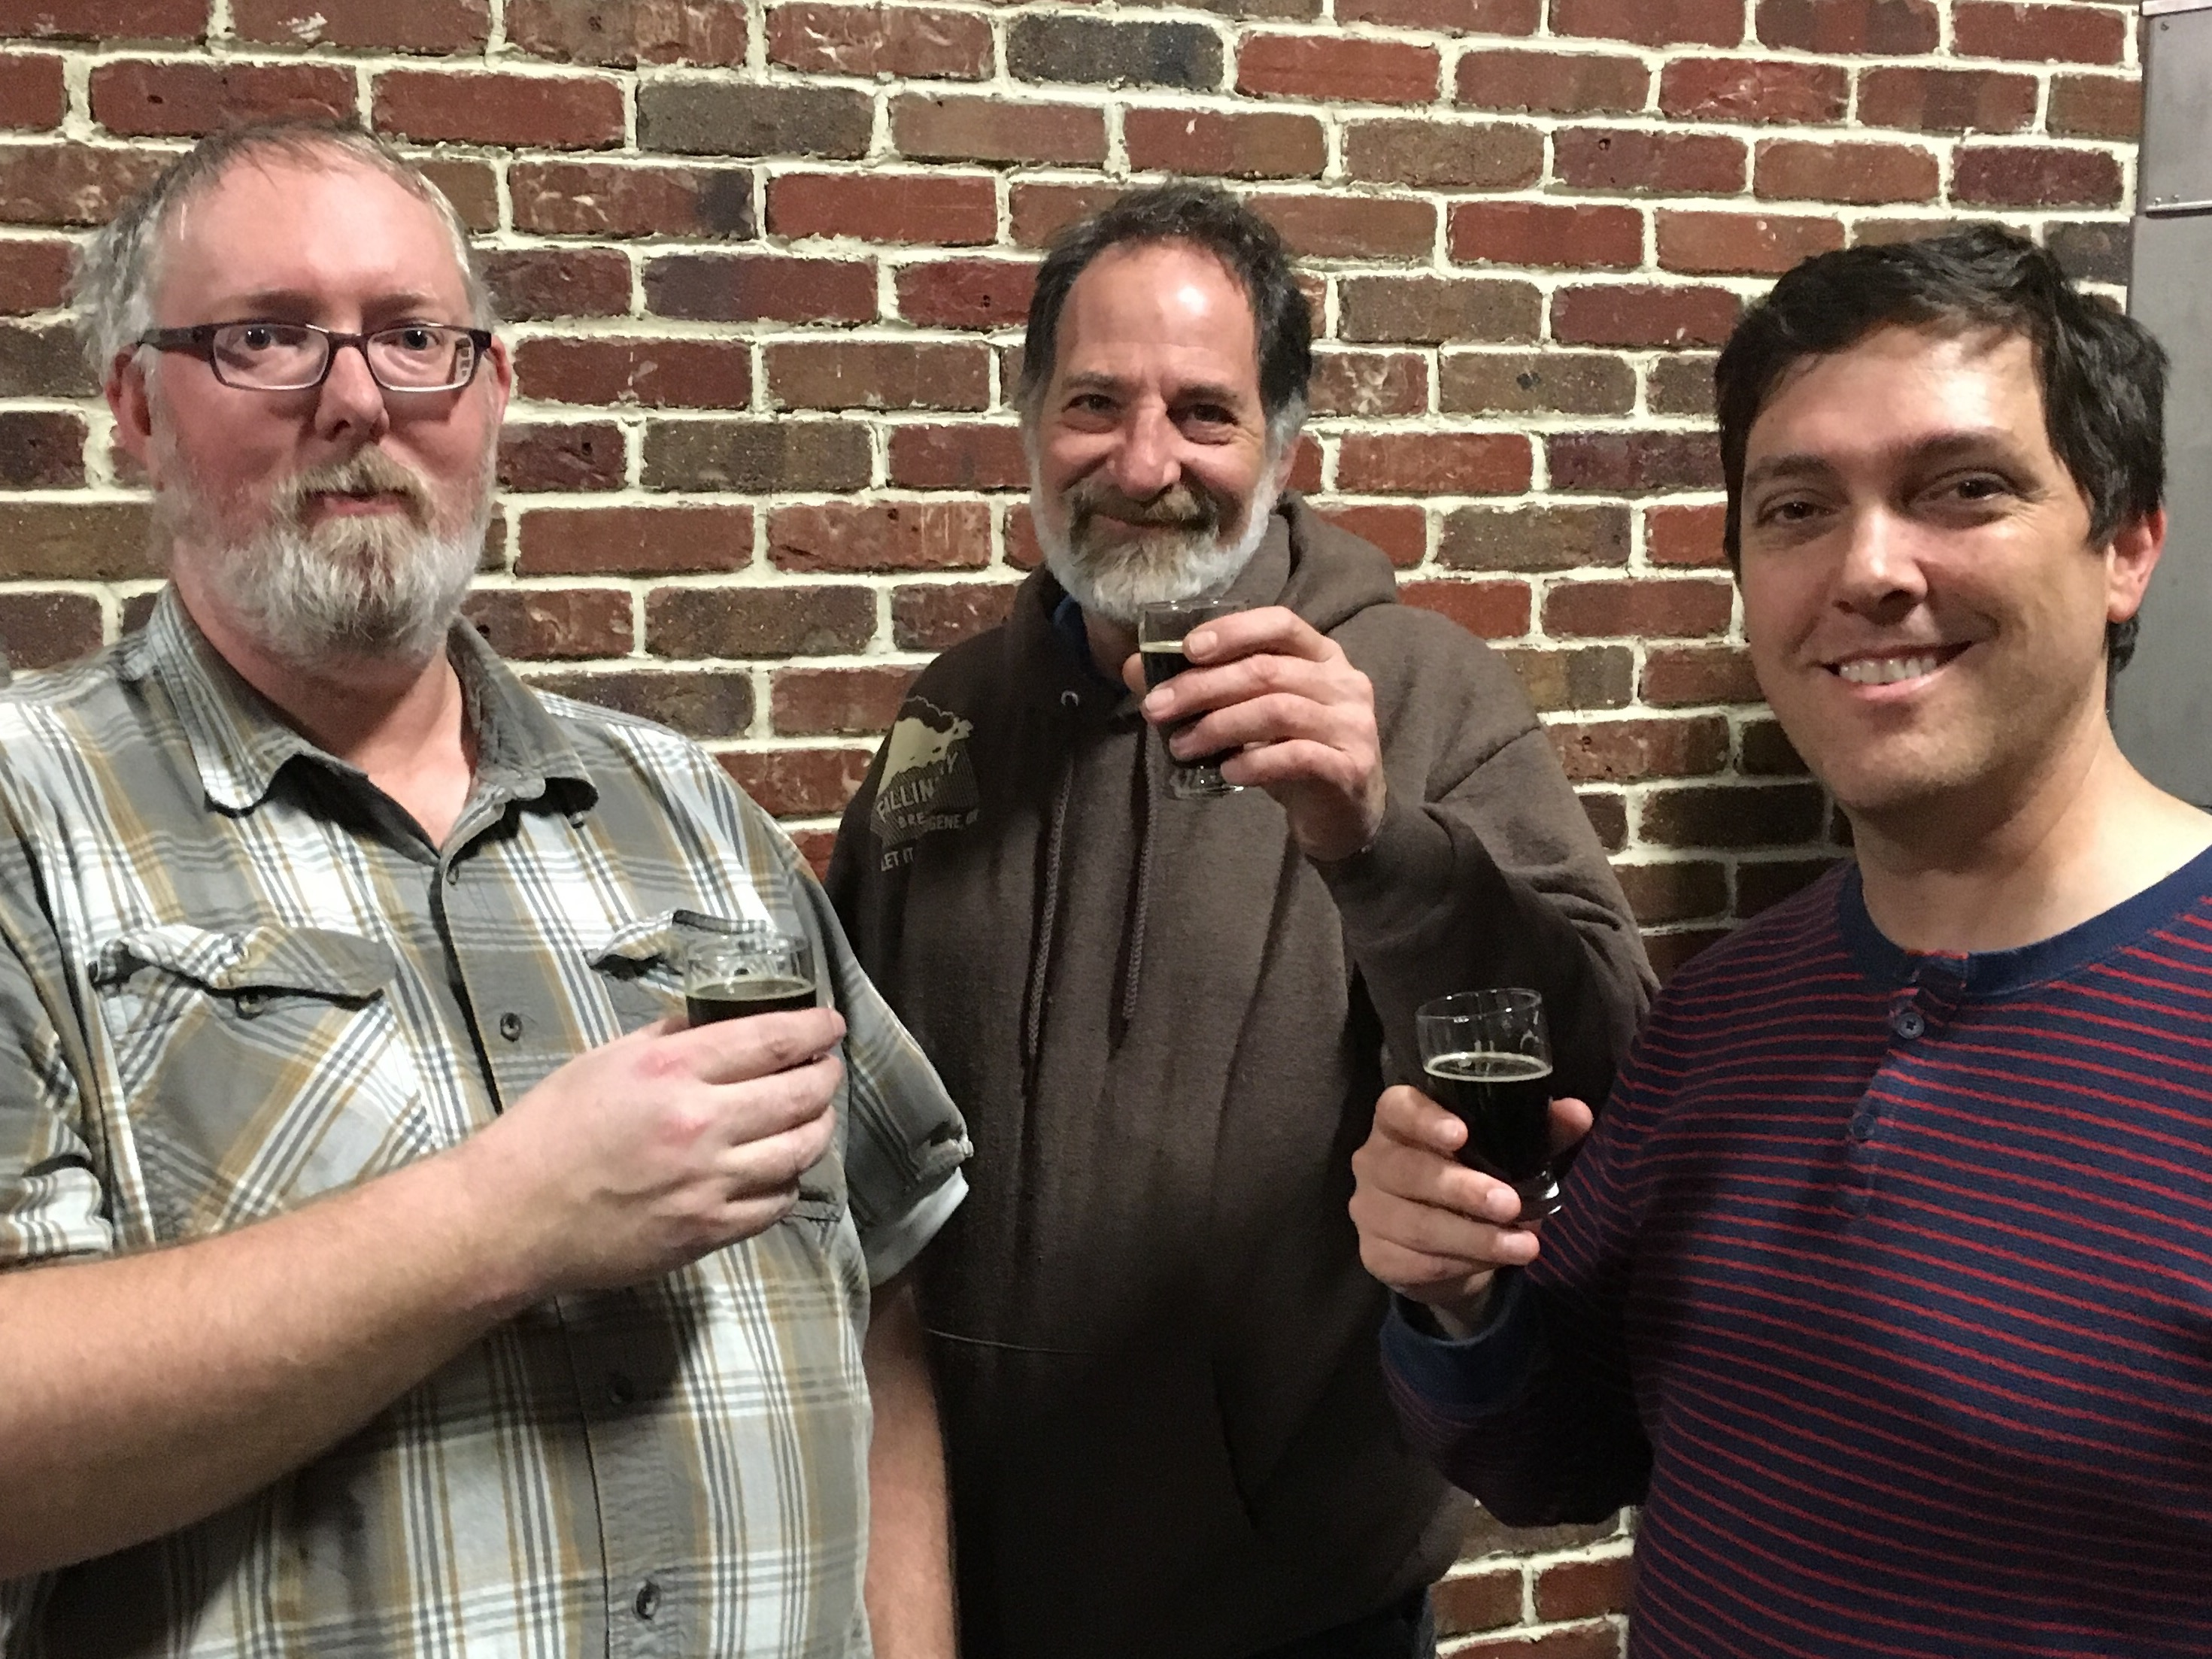 John Lovegrove and Justin Kagan makers of Badbeard's Coffee Stout along with Baker's Dozen founder Brian Yaeger.